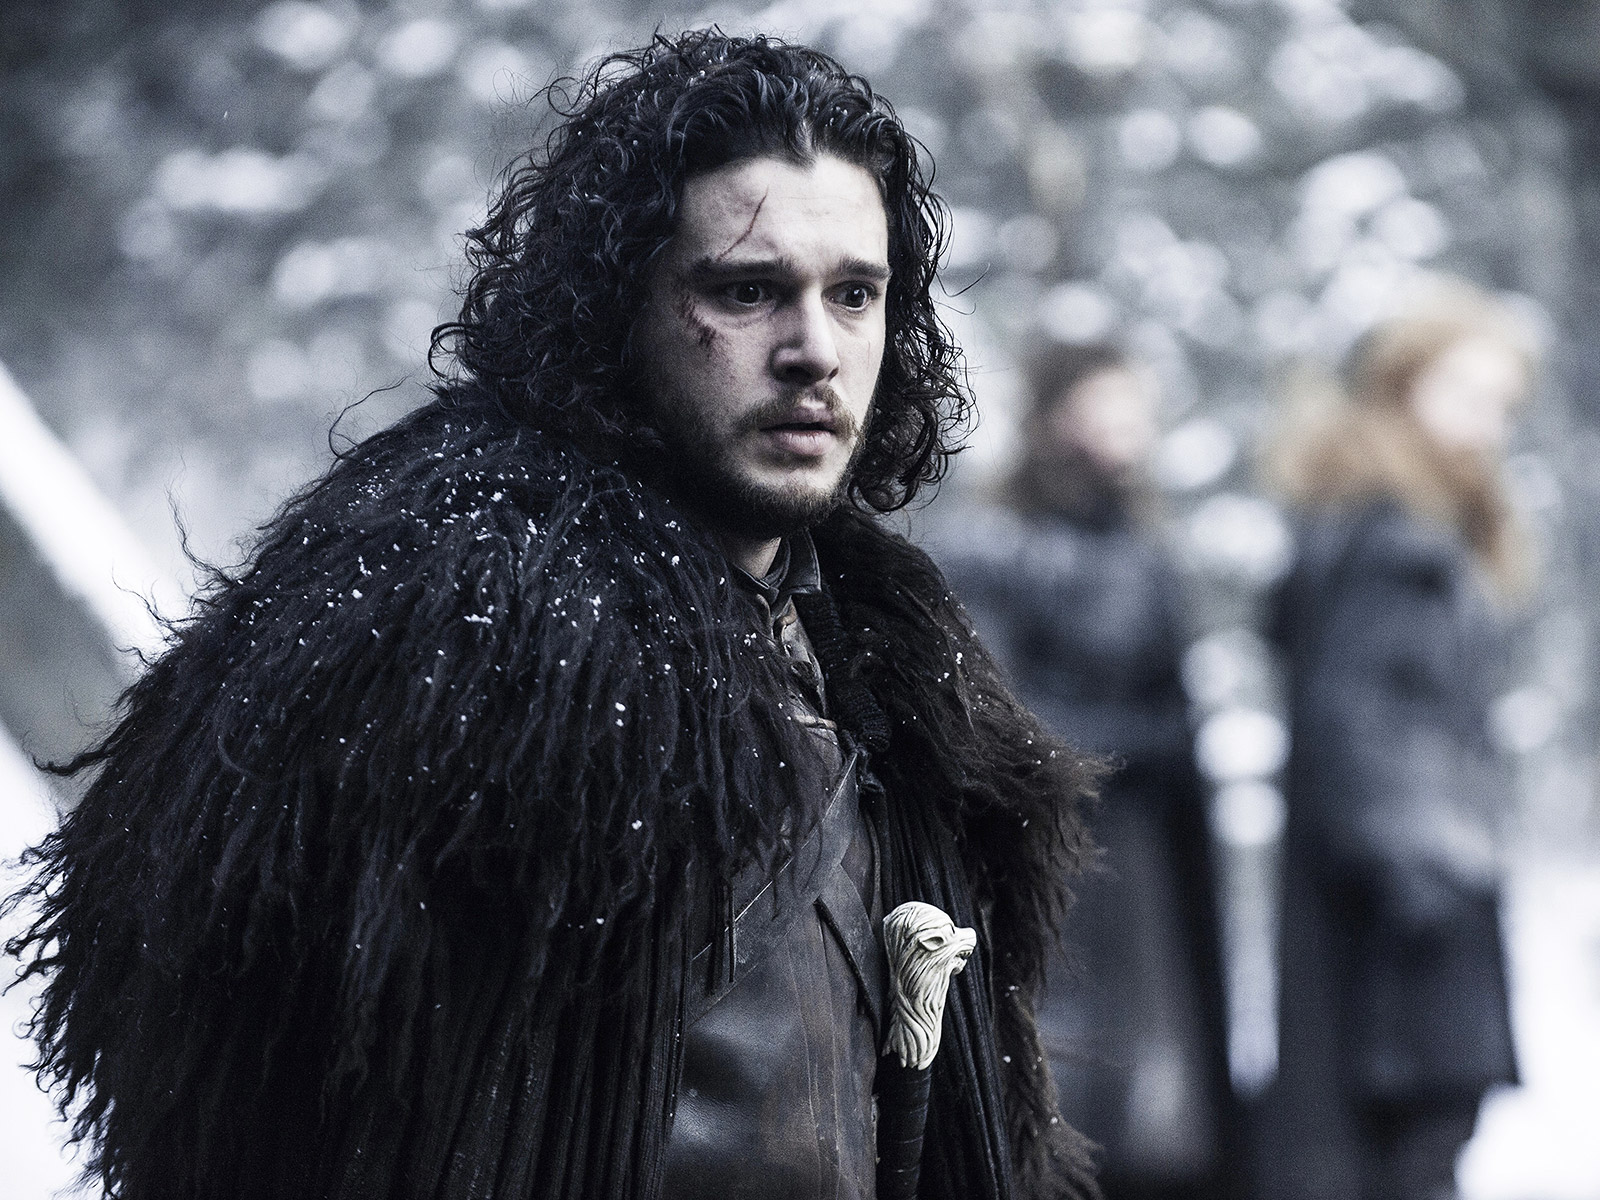 The 13th 'Game of Thrones' Beer, and Final Release of 2018, Is a Tribute to the King in the North